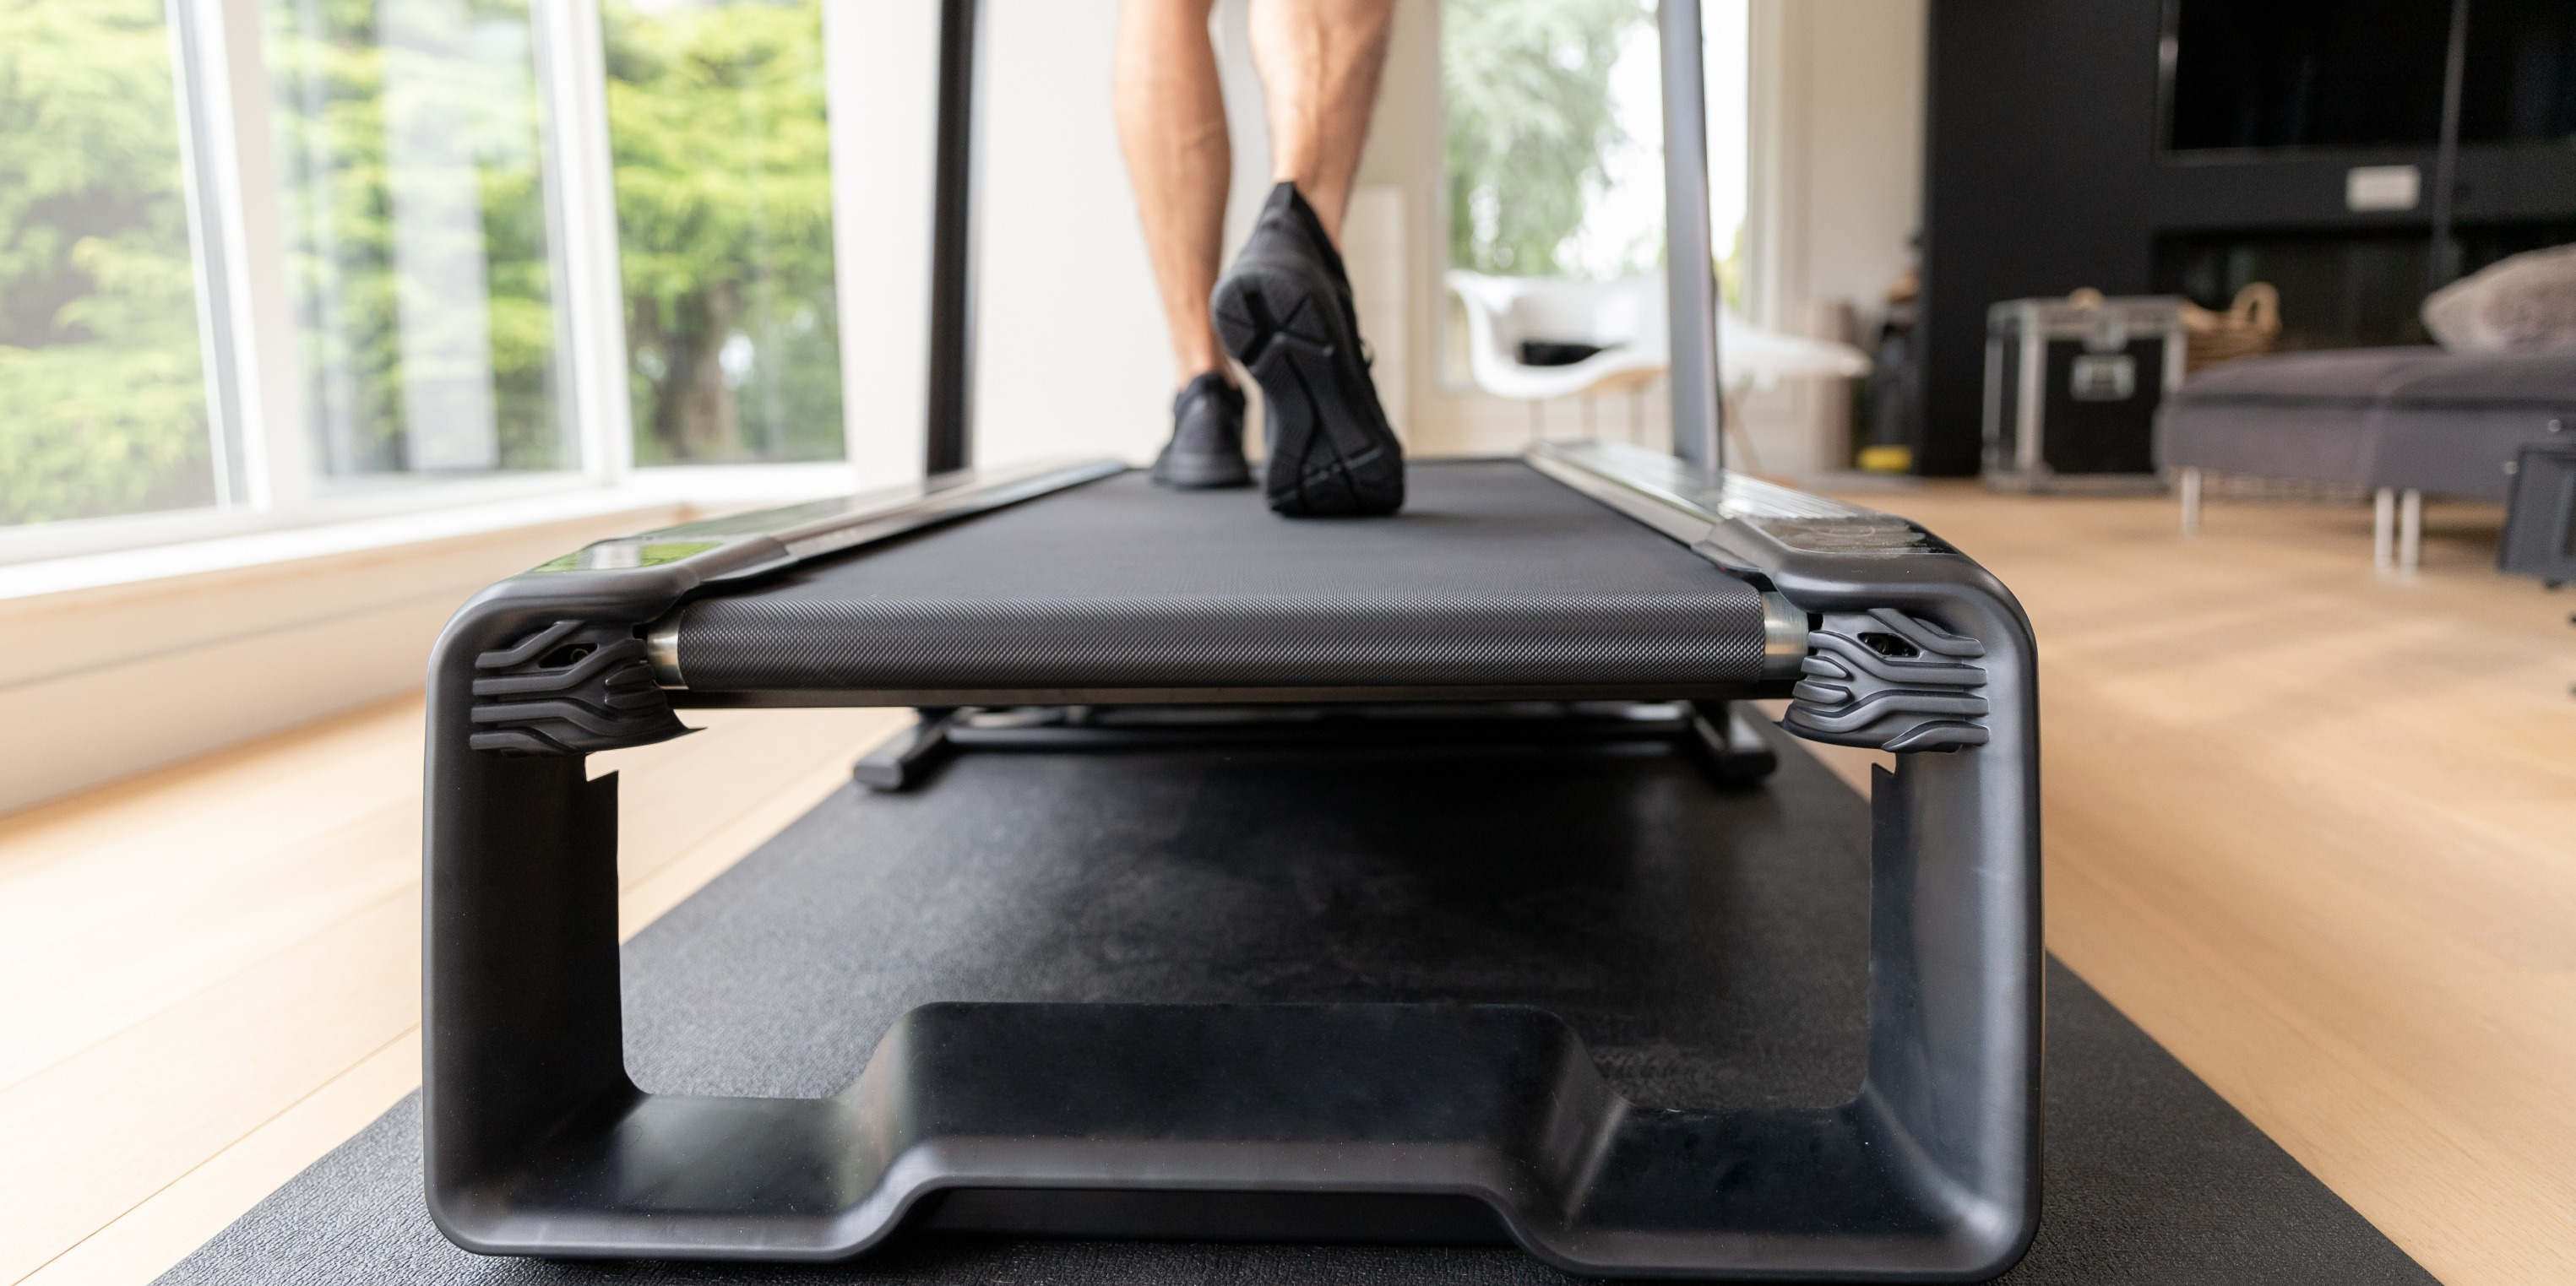 Our 4 Week Treadmill Training Plan